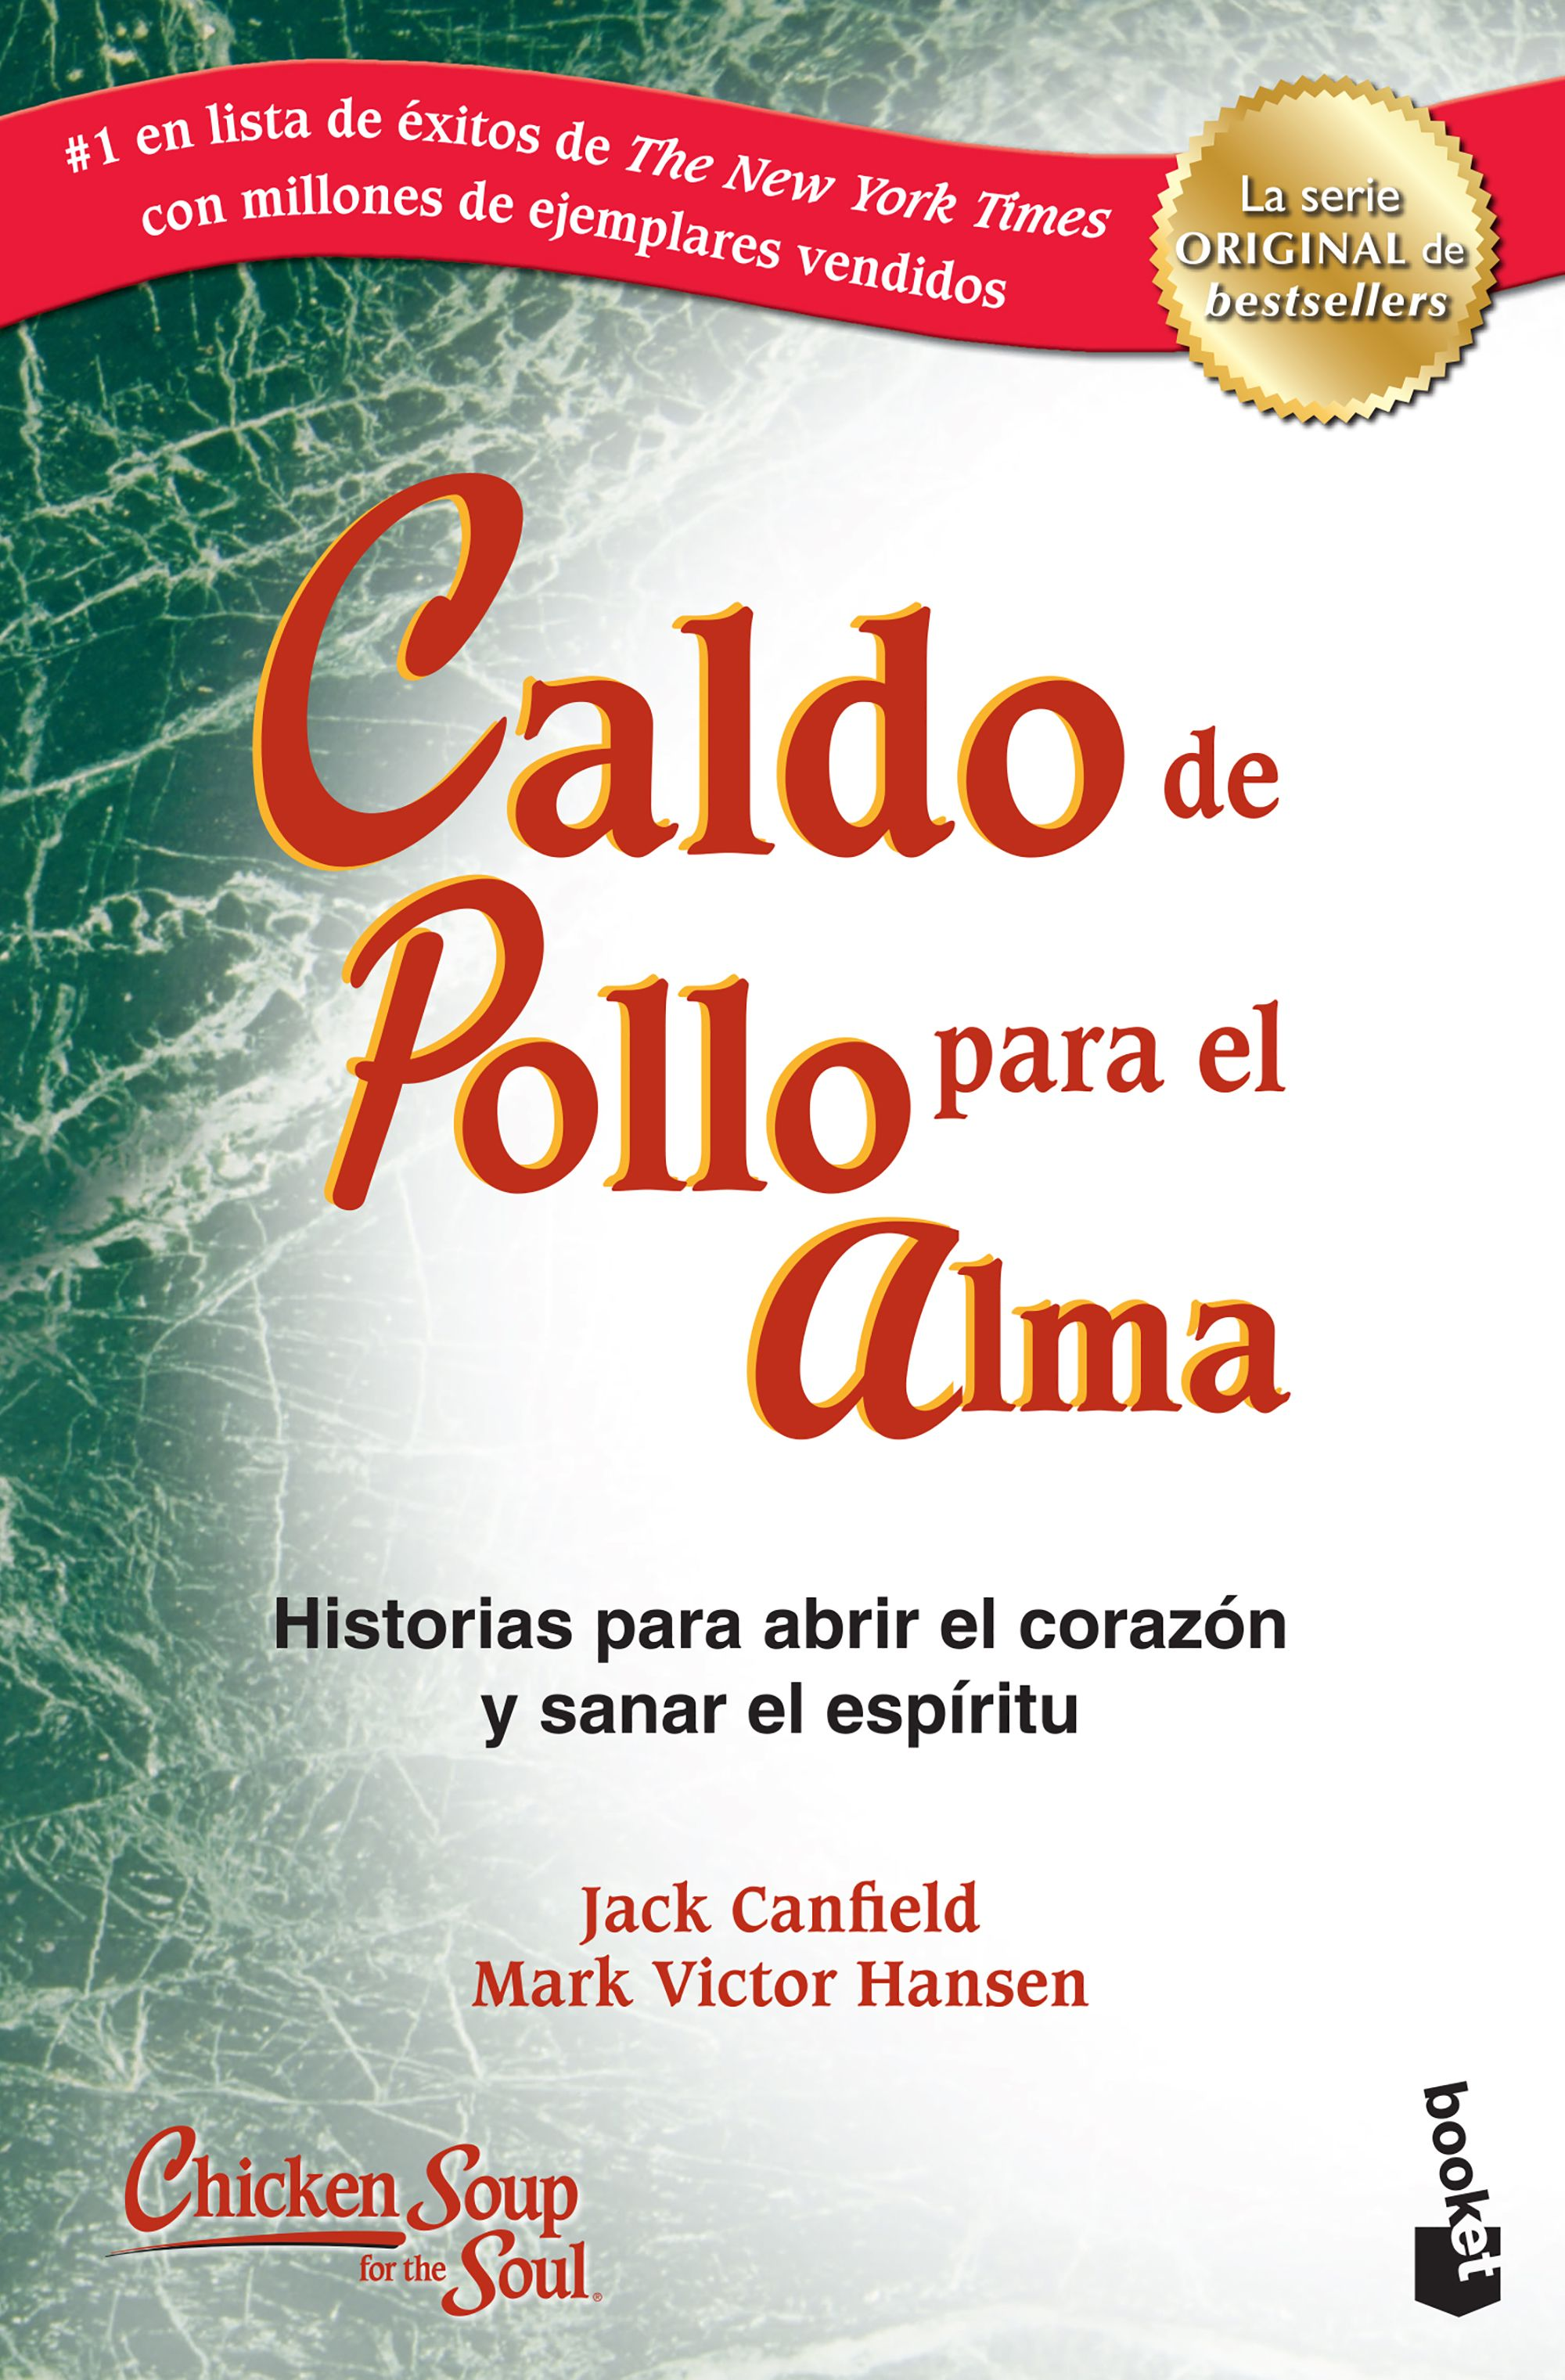 jack canfield libros pdf